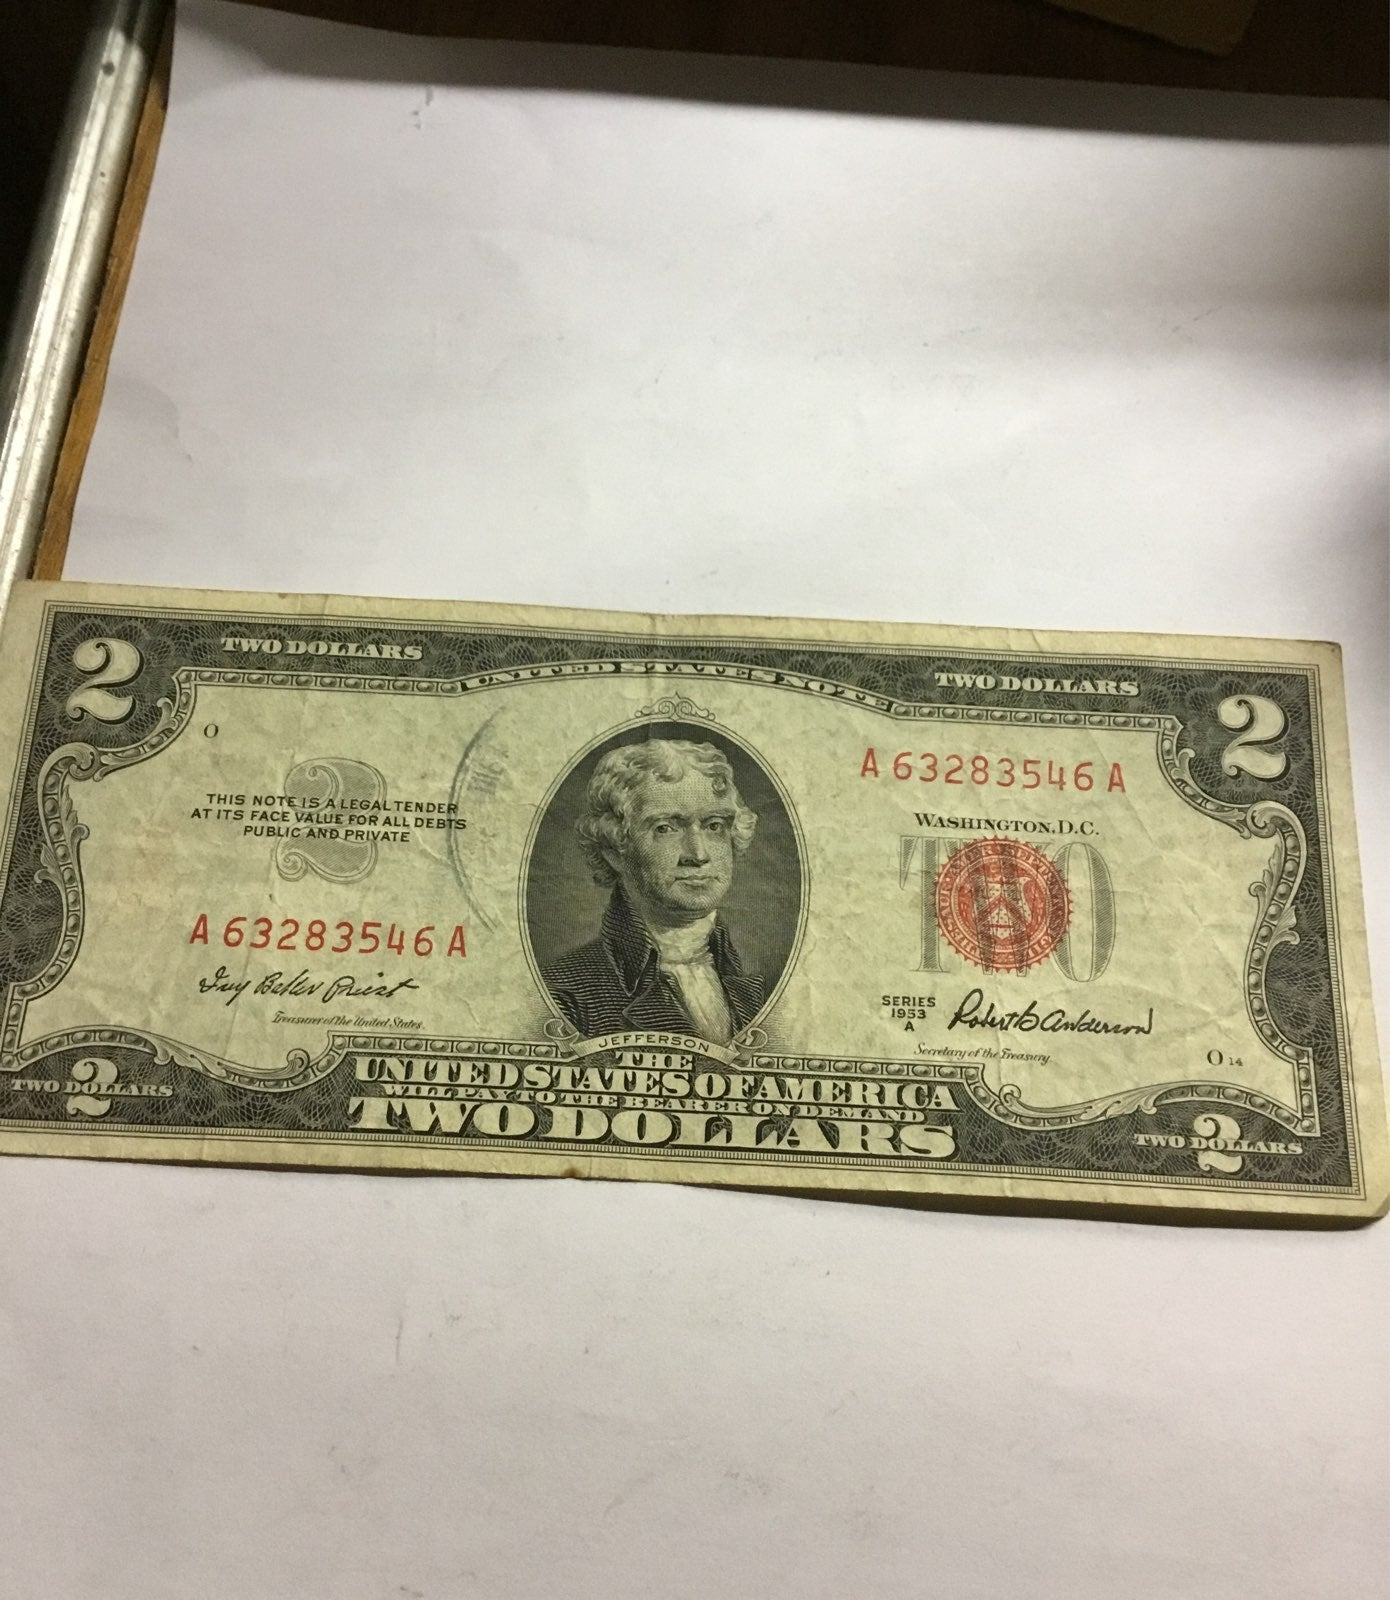 $2.00 bill US Note 1953A red seal